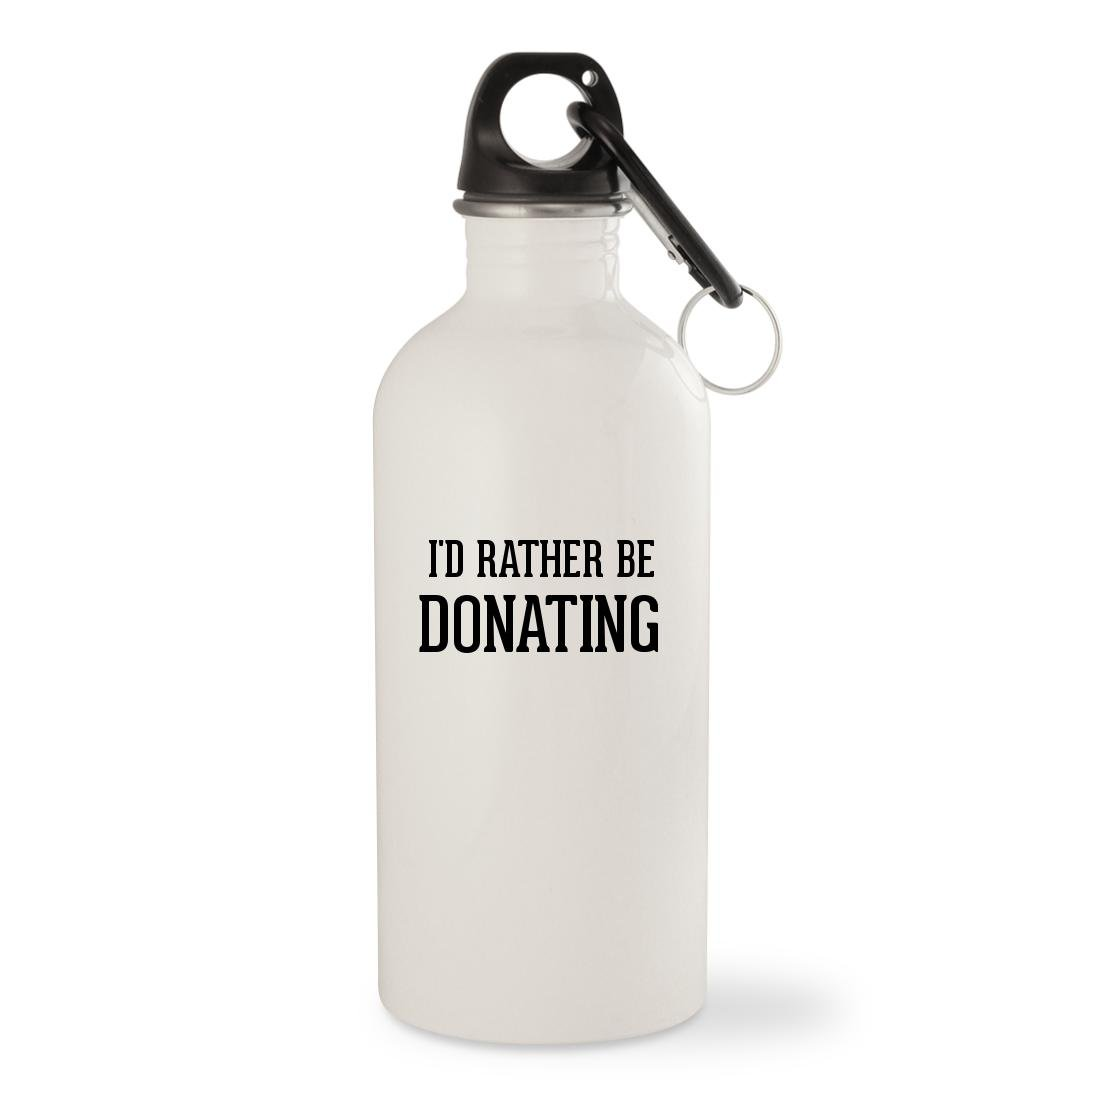 I'd Rather Be DONATING - White 20oz Stainless Steel Water Bottle with Carabiner